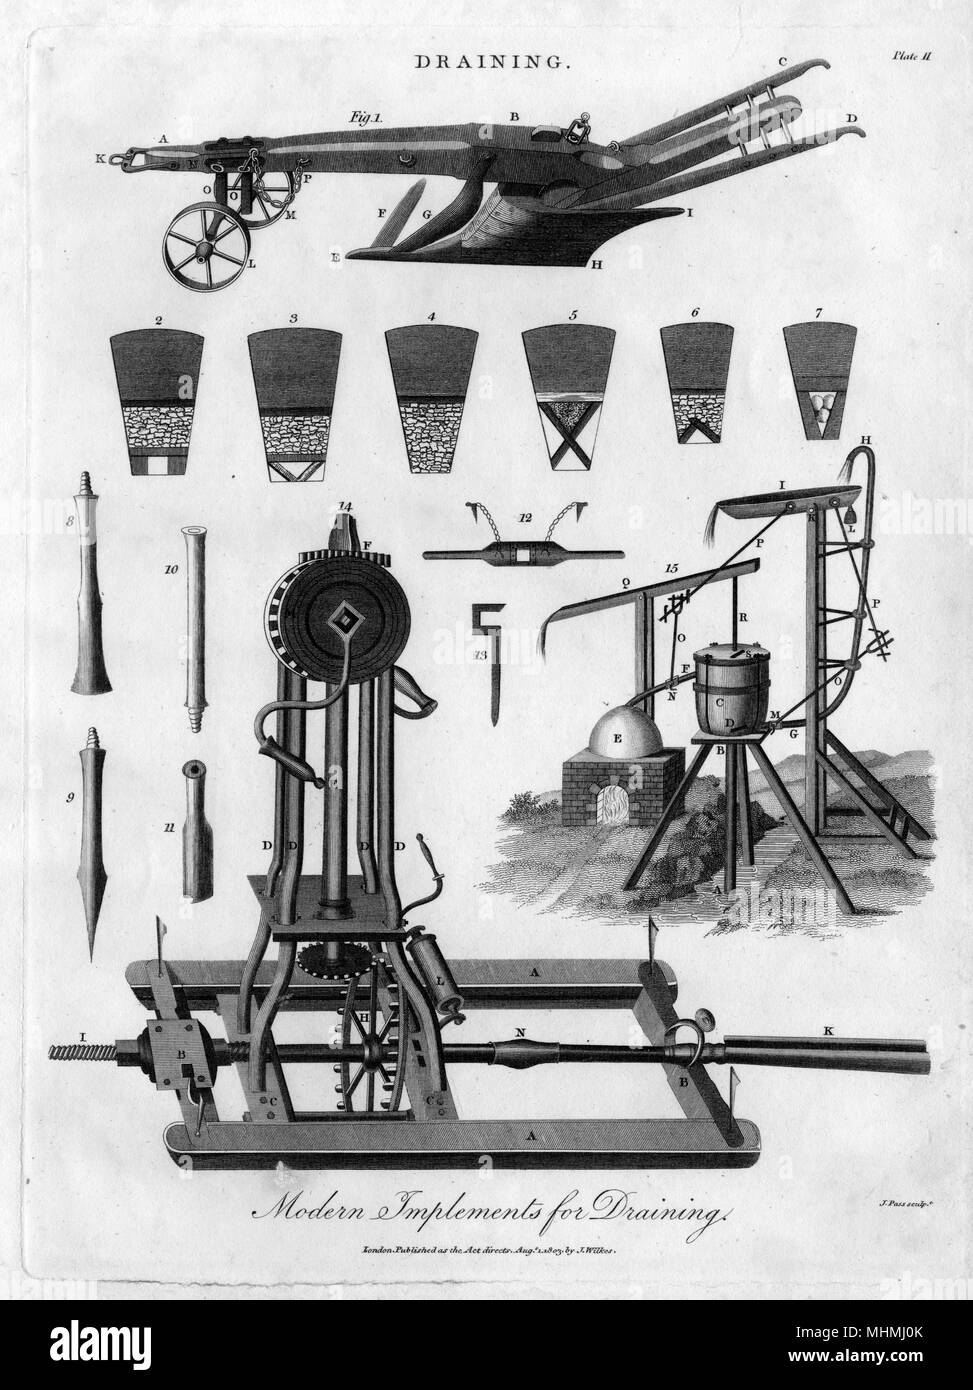 Implements for modern drainage        Date: 1803 - Stock Image